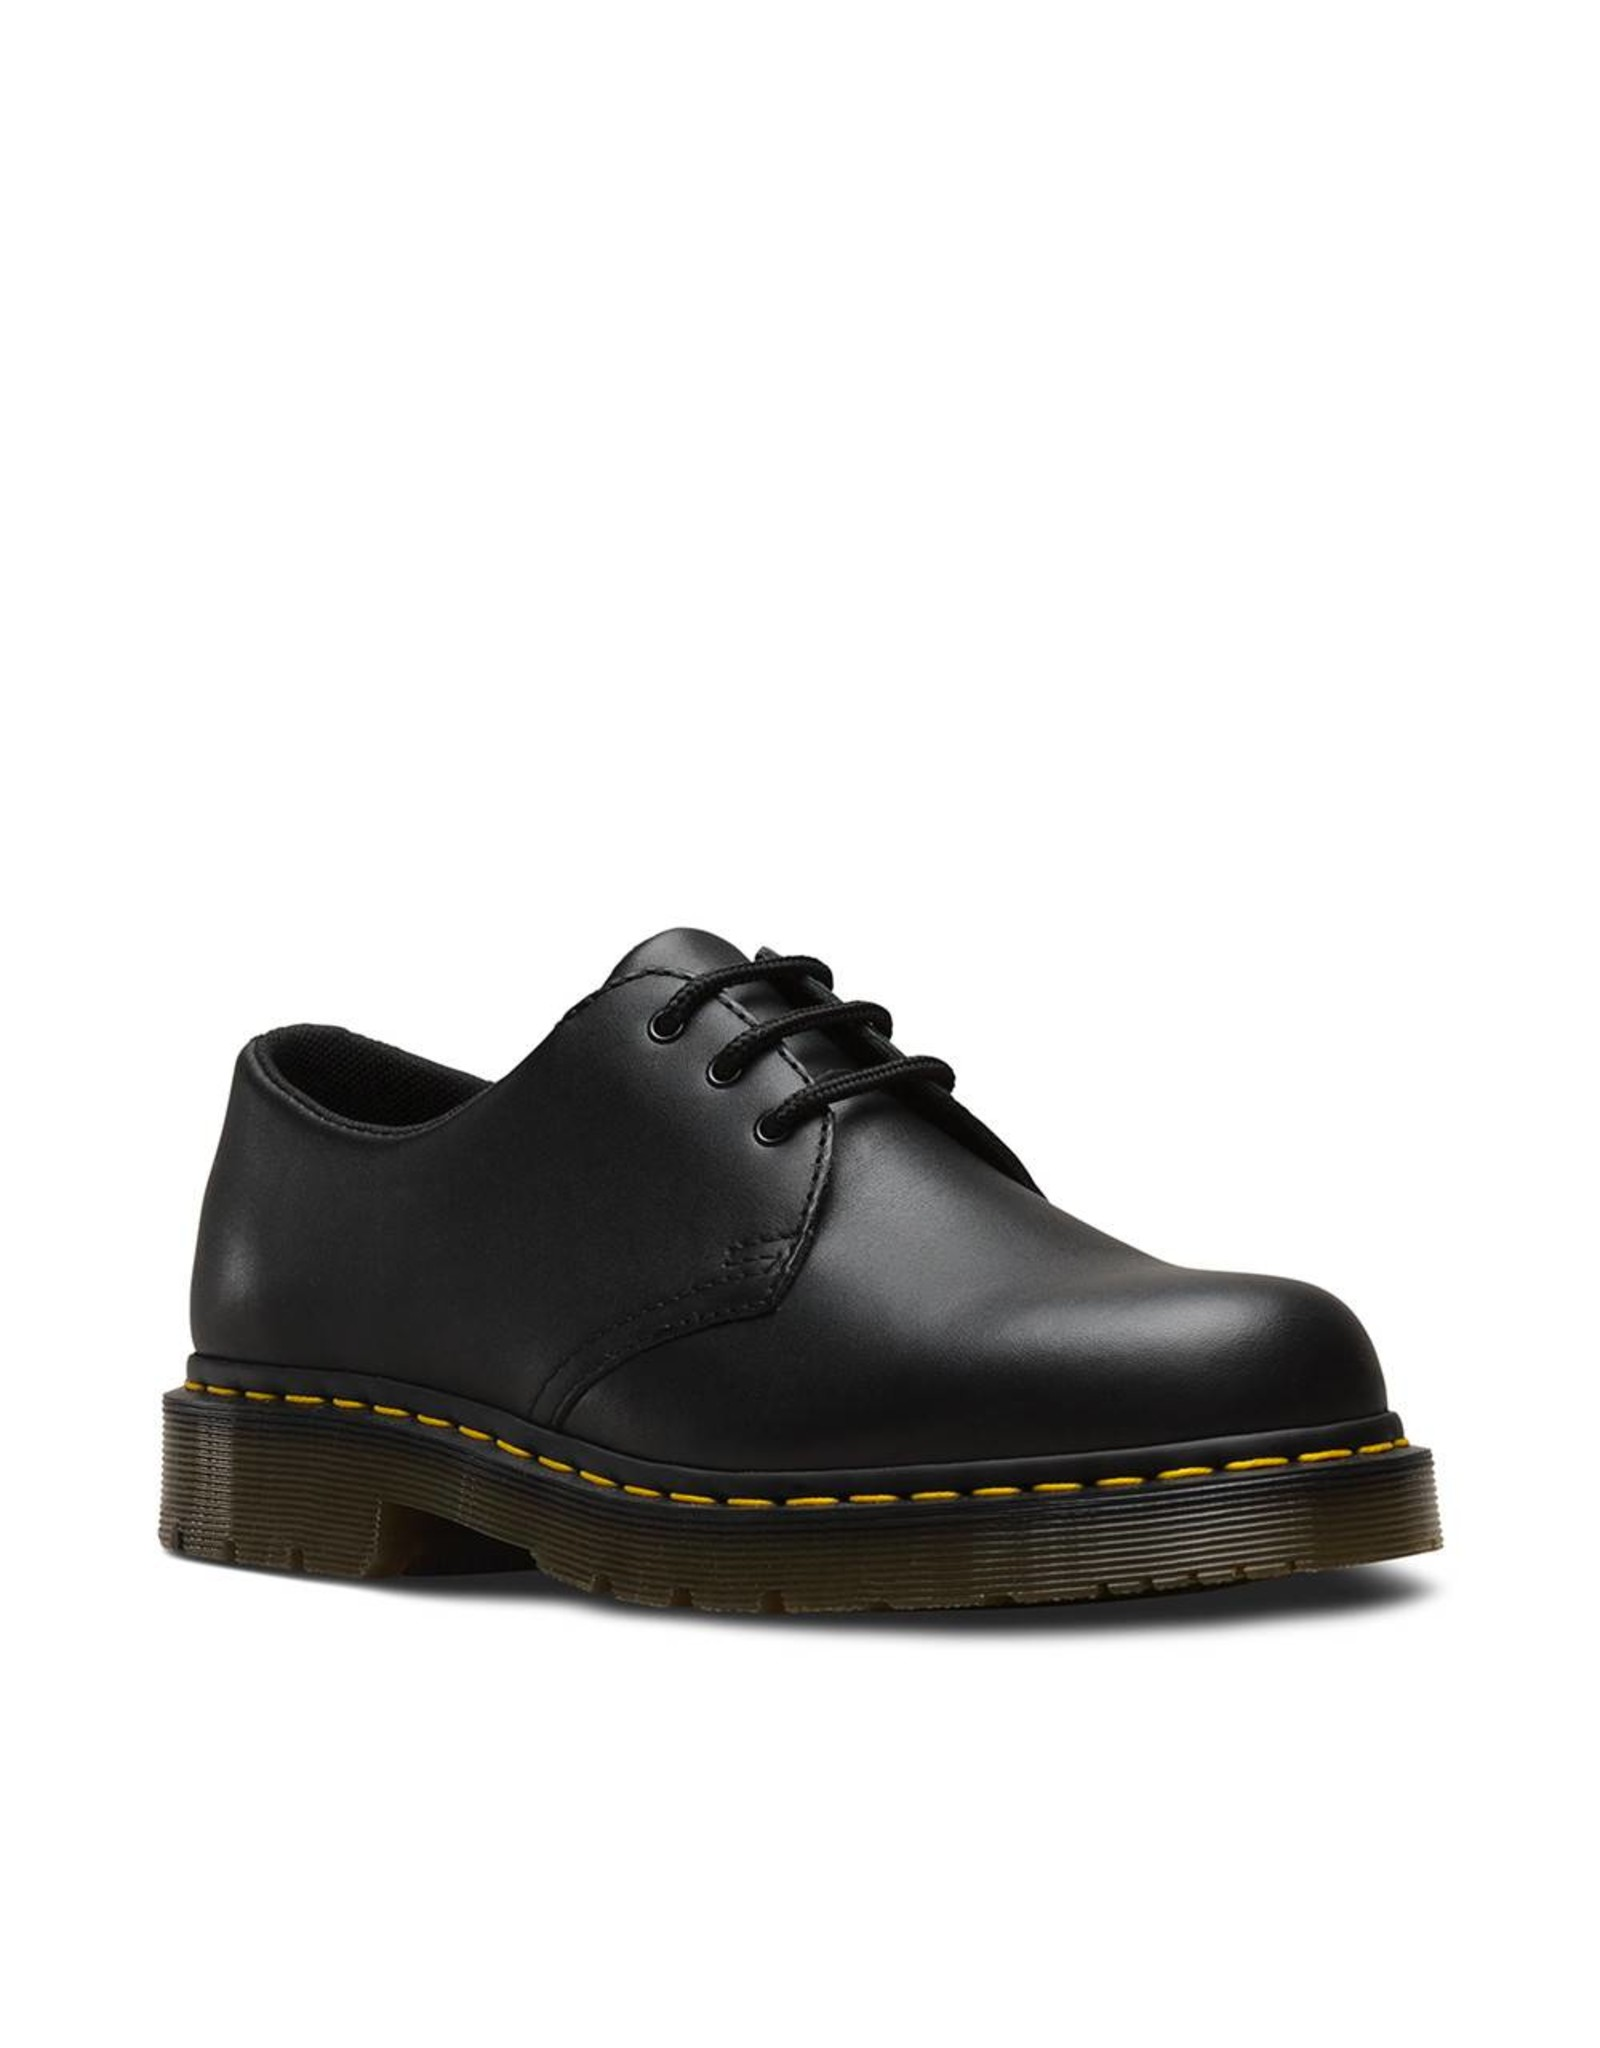 DR. MARTENS 1461 SR BLACK INDUSTRIAL FULL GRAIN 301BSR-R24381001